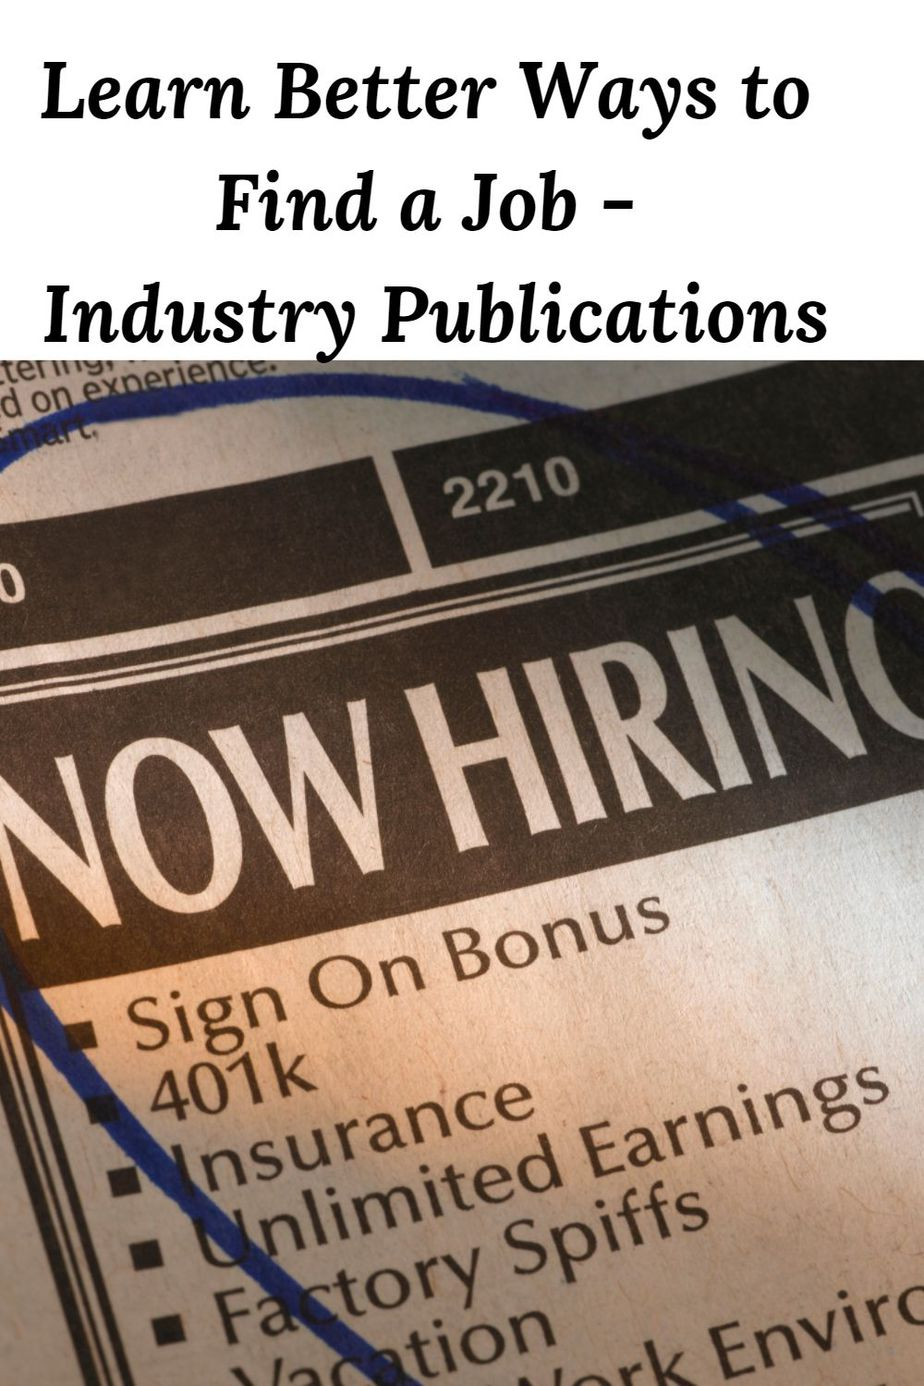 Learn Better Ways to Find a Job - Industry Publications